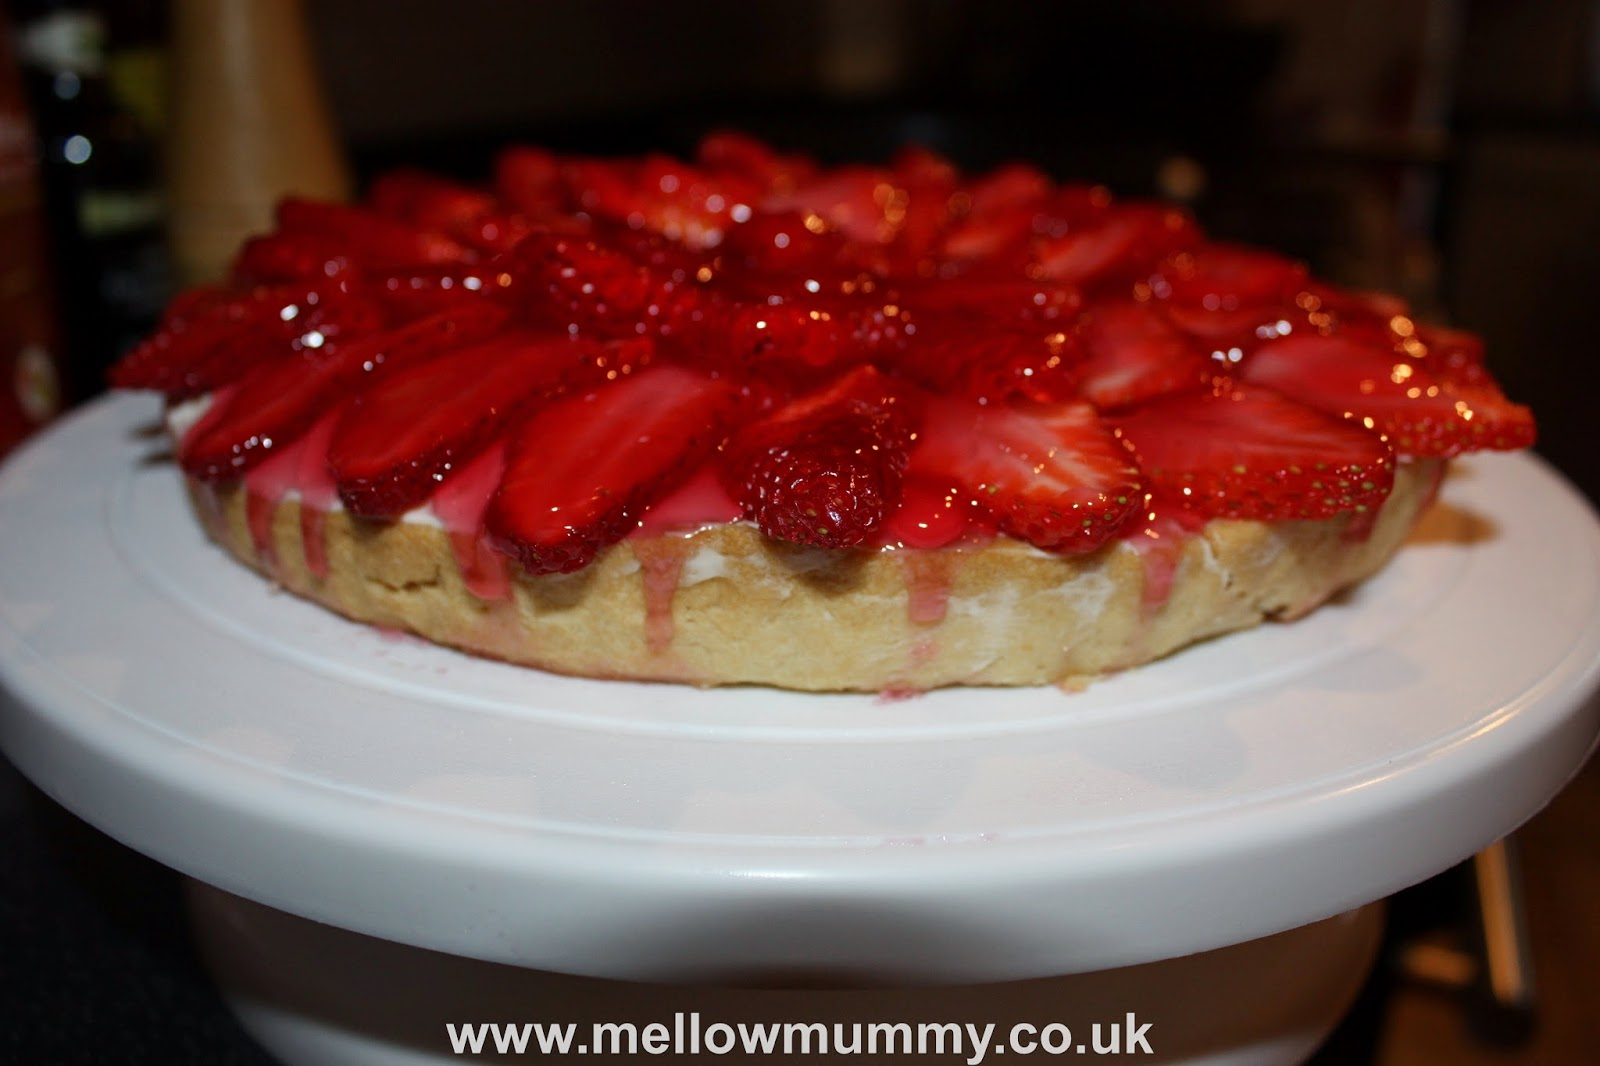 Tidying up the Glazed Strawberry and Cream Cheese Tart